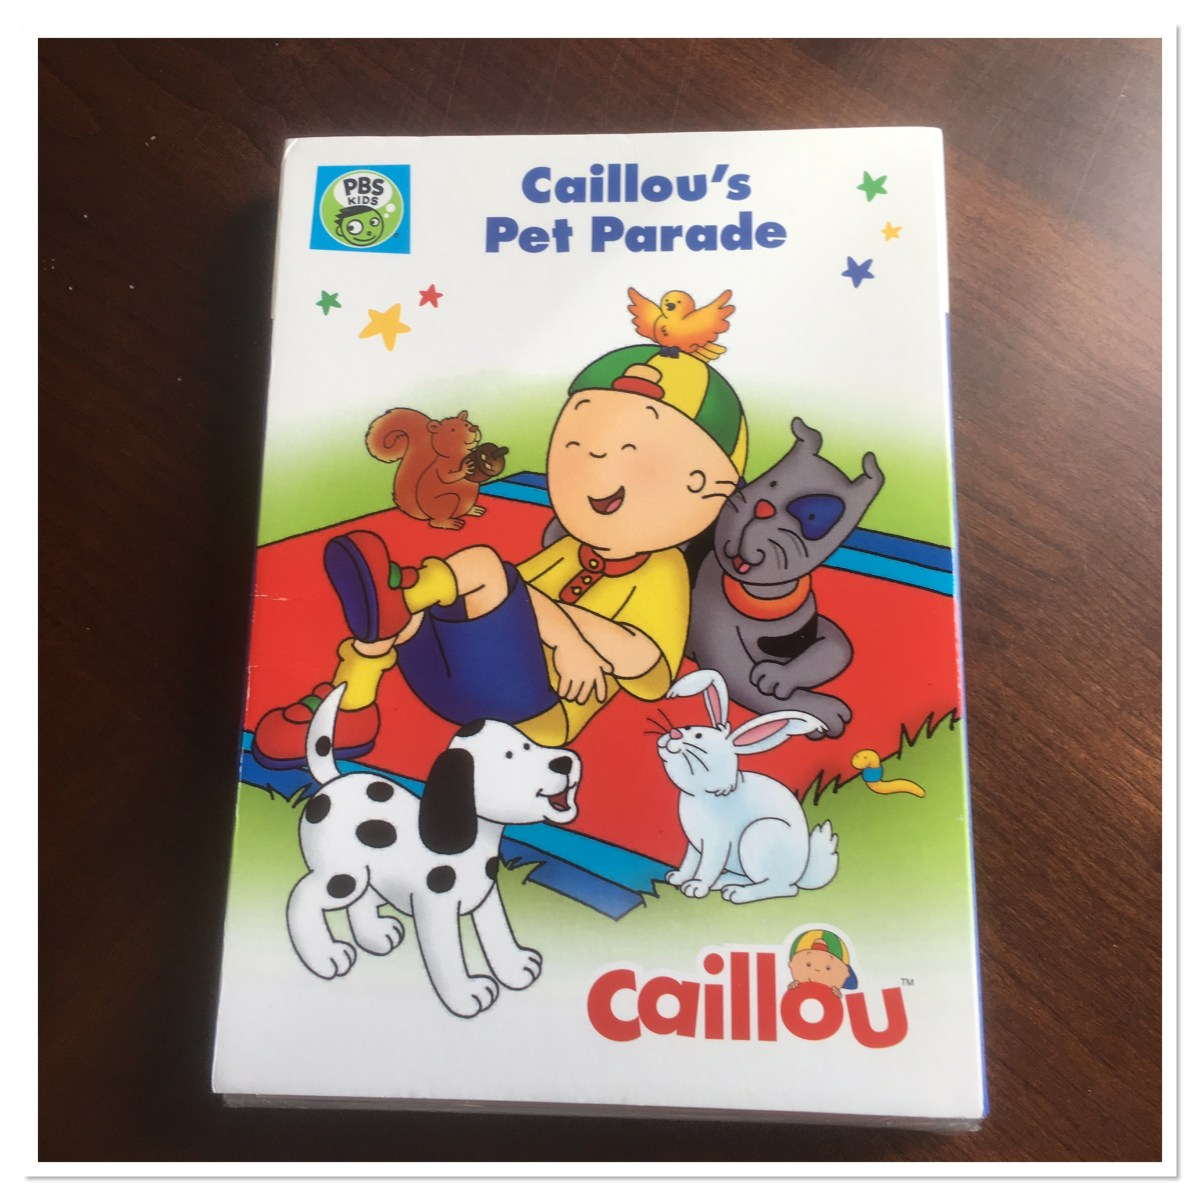 Caillou's Pet Parade  by PBS Kids